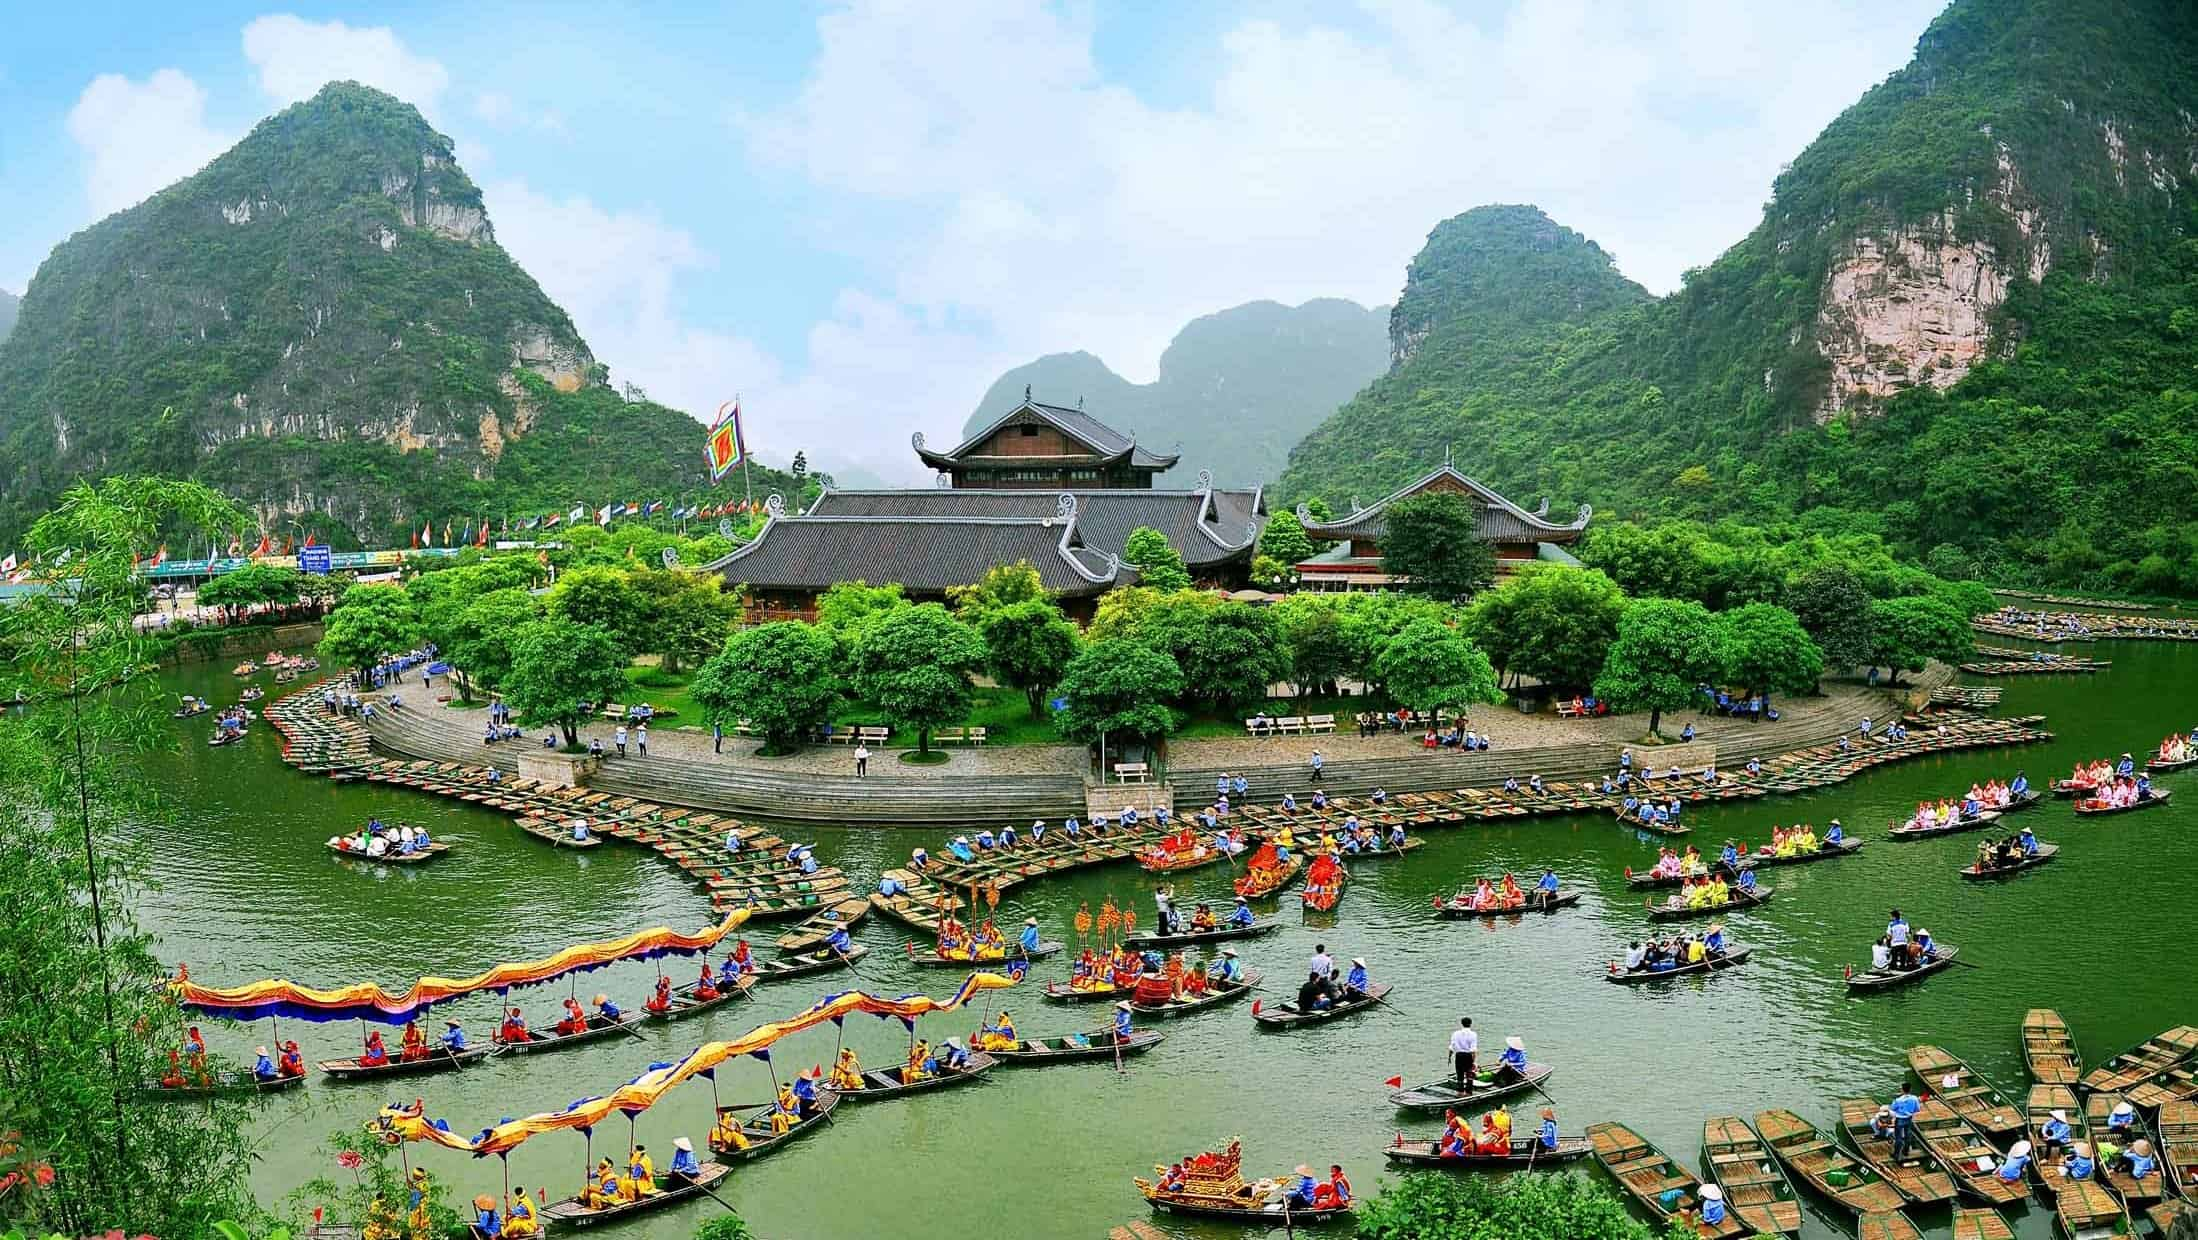 The beauty of Hoa Lu ancient capital